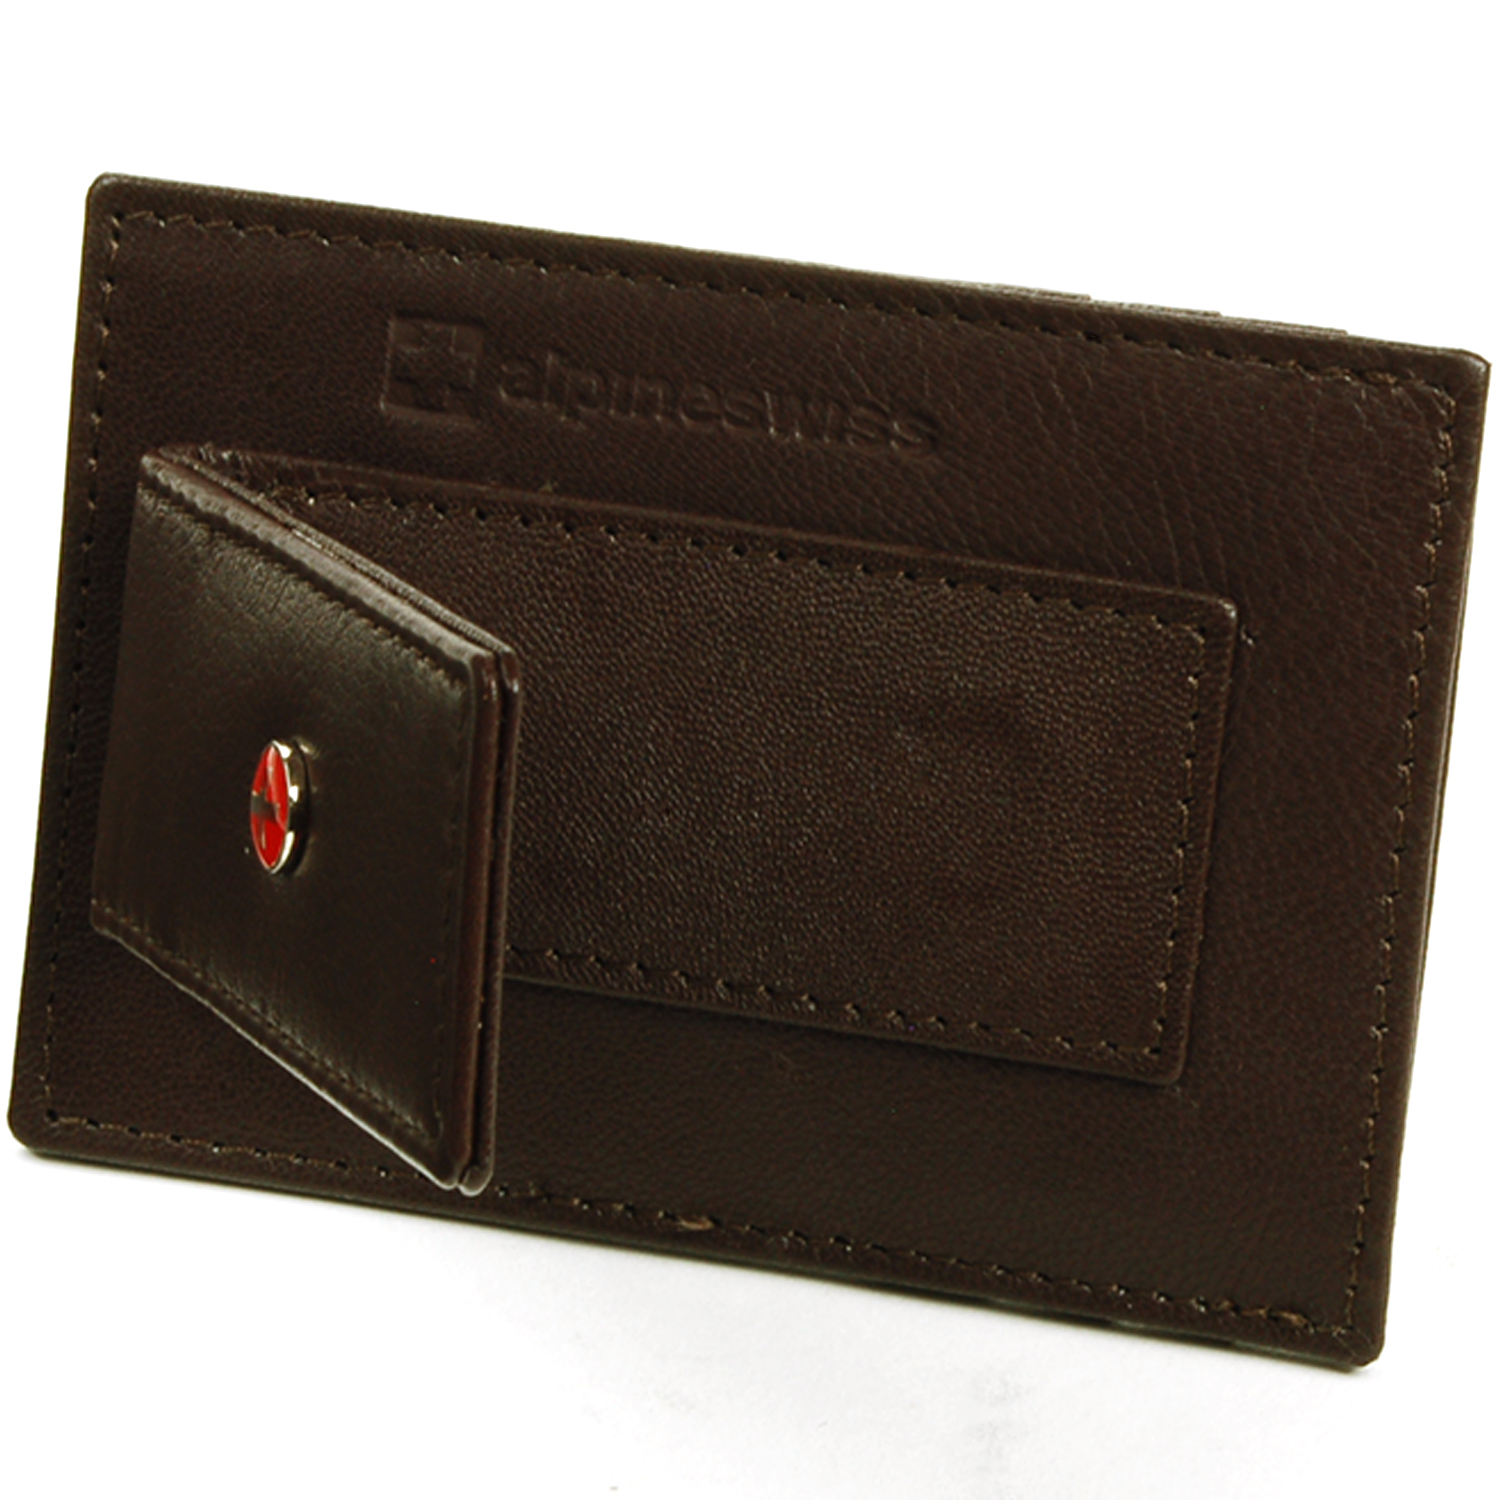 f9eeae952 Alpine Swiss Mens Leather Money Clip Wallet Slim Card Case Up to 15 ...